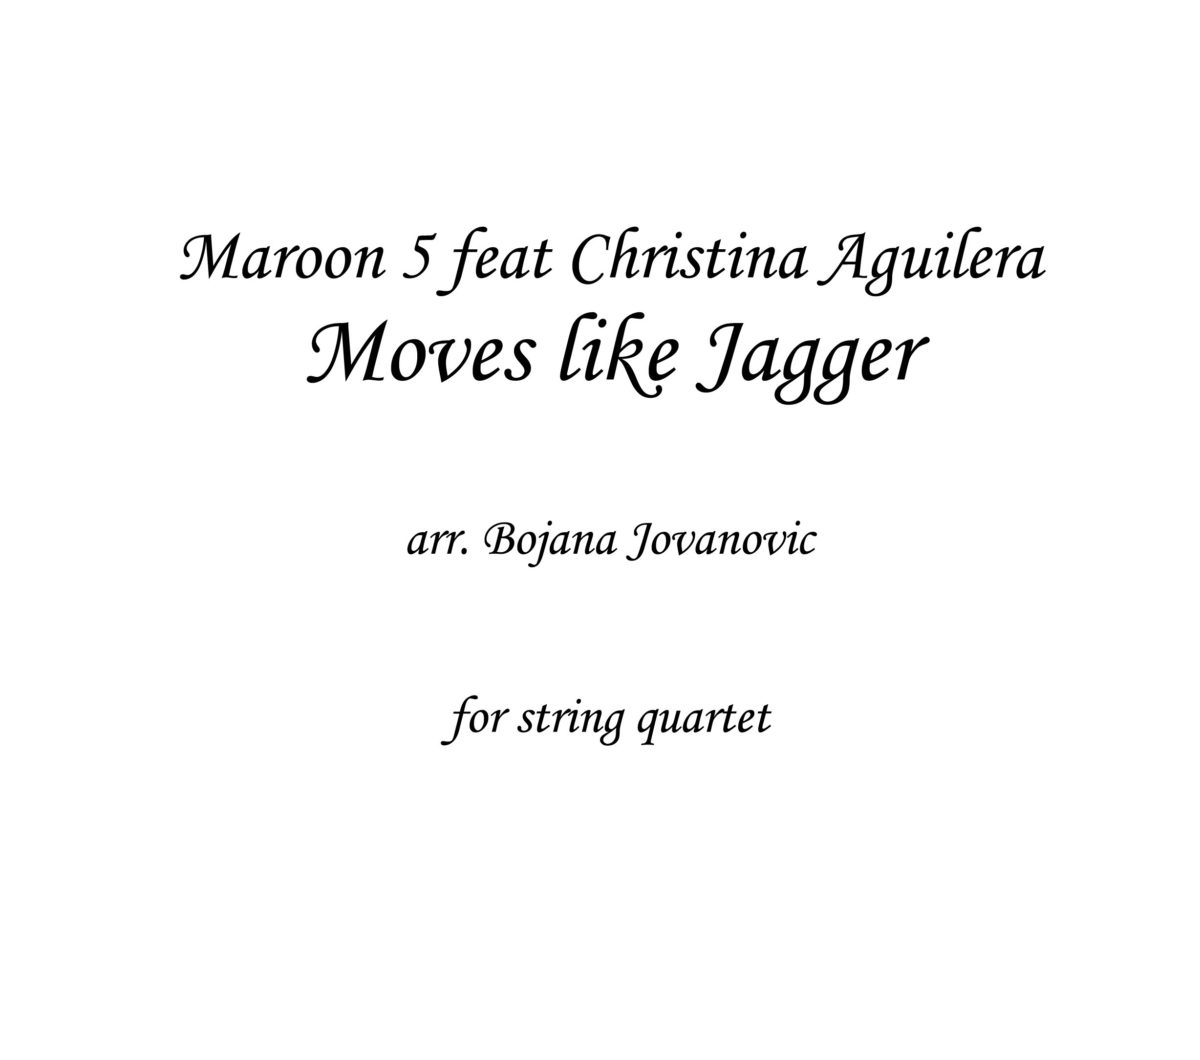 Moves like Jagger (Maroon 5) - Sheet Music